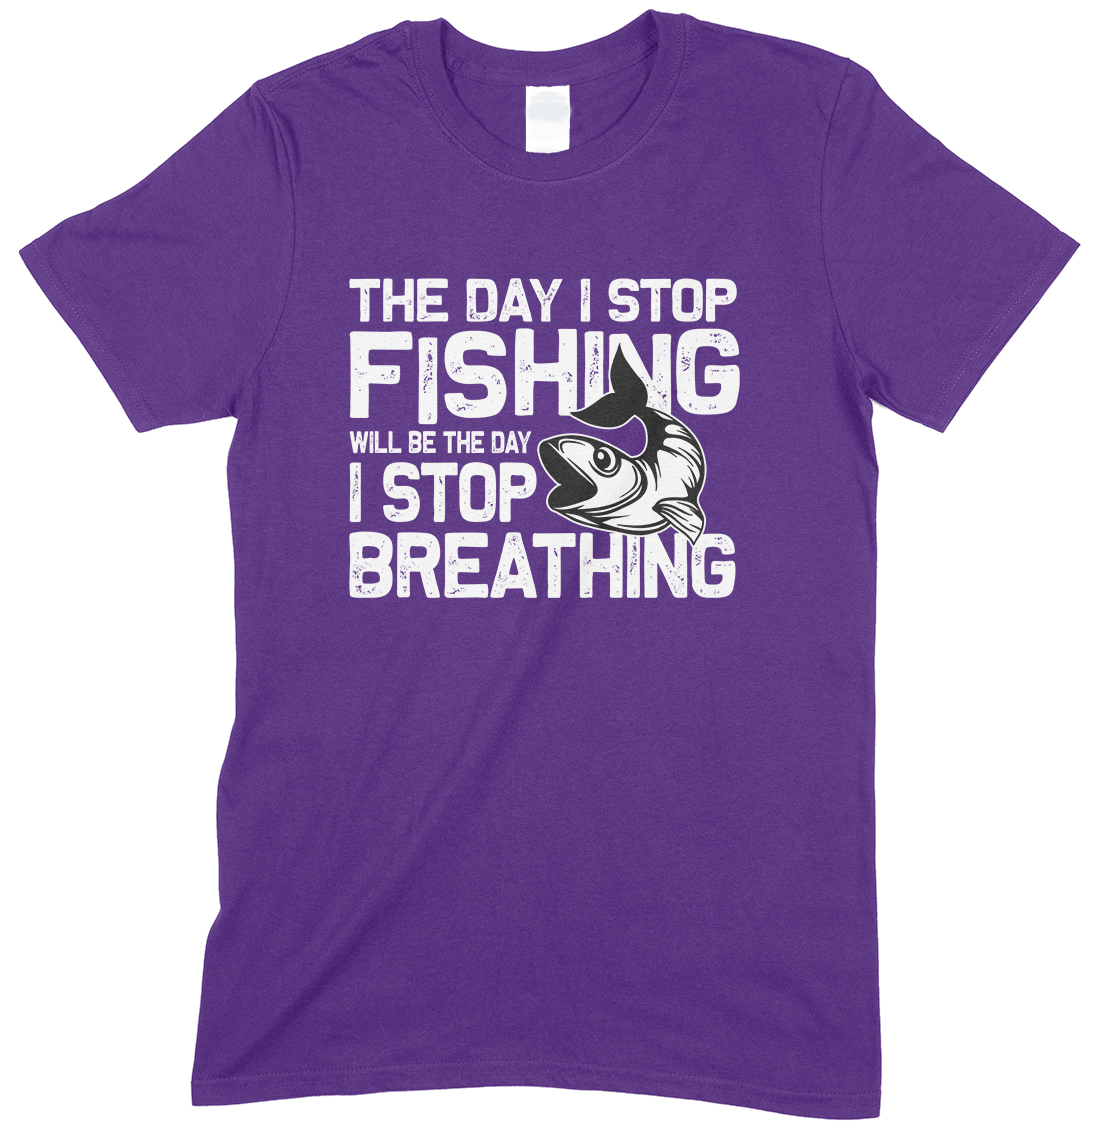 The Day I Stop Fishing Will Be The Day I Stop Breathing-Unisex Child's T Shirt Boy/Girl